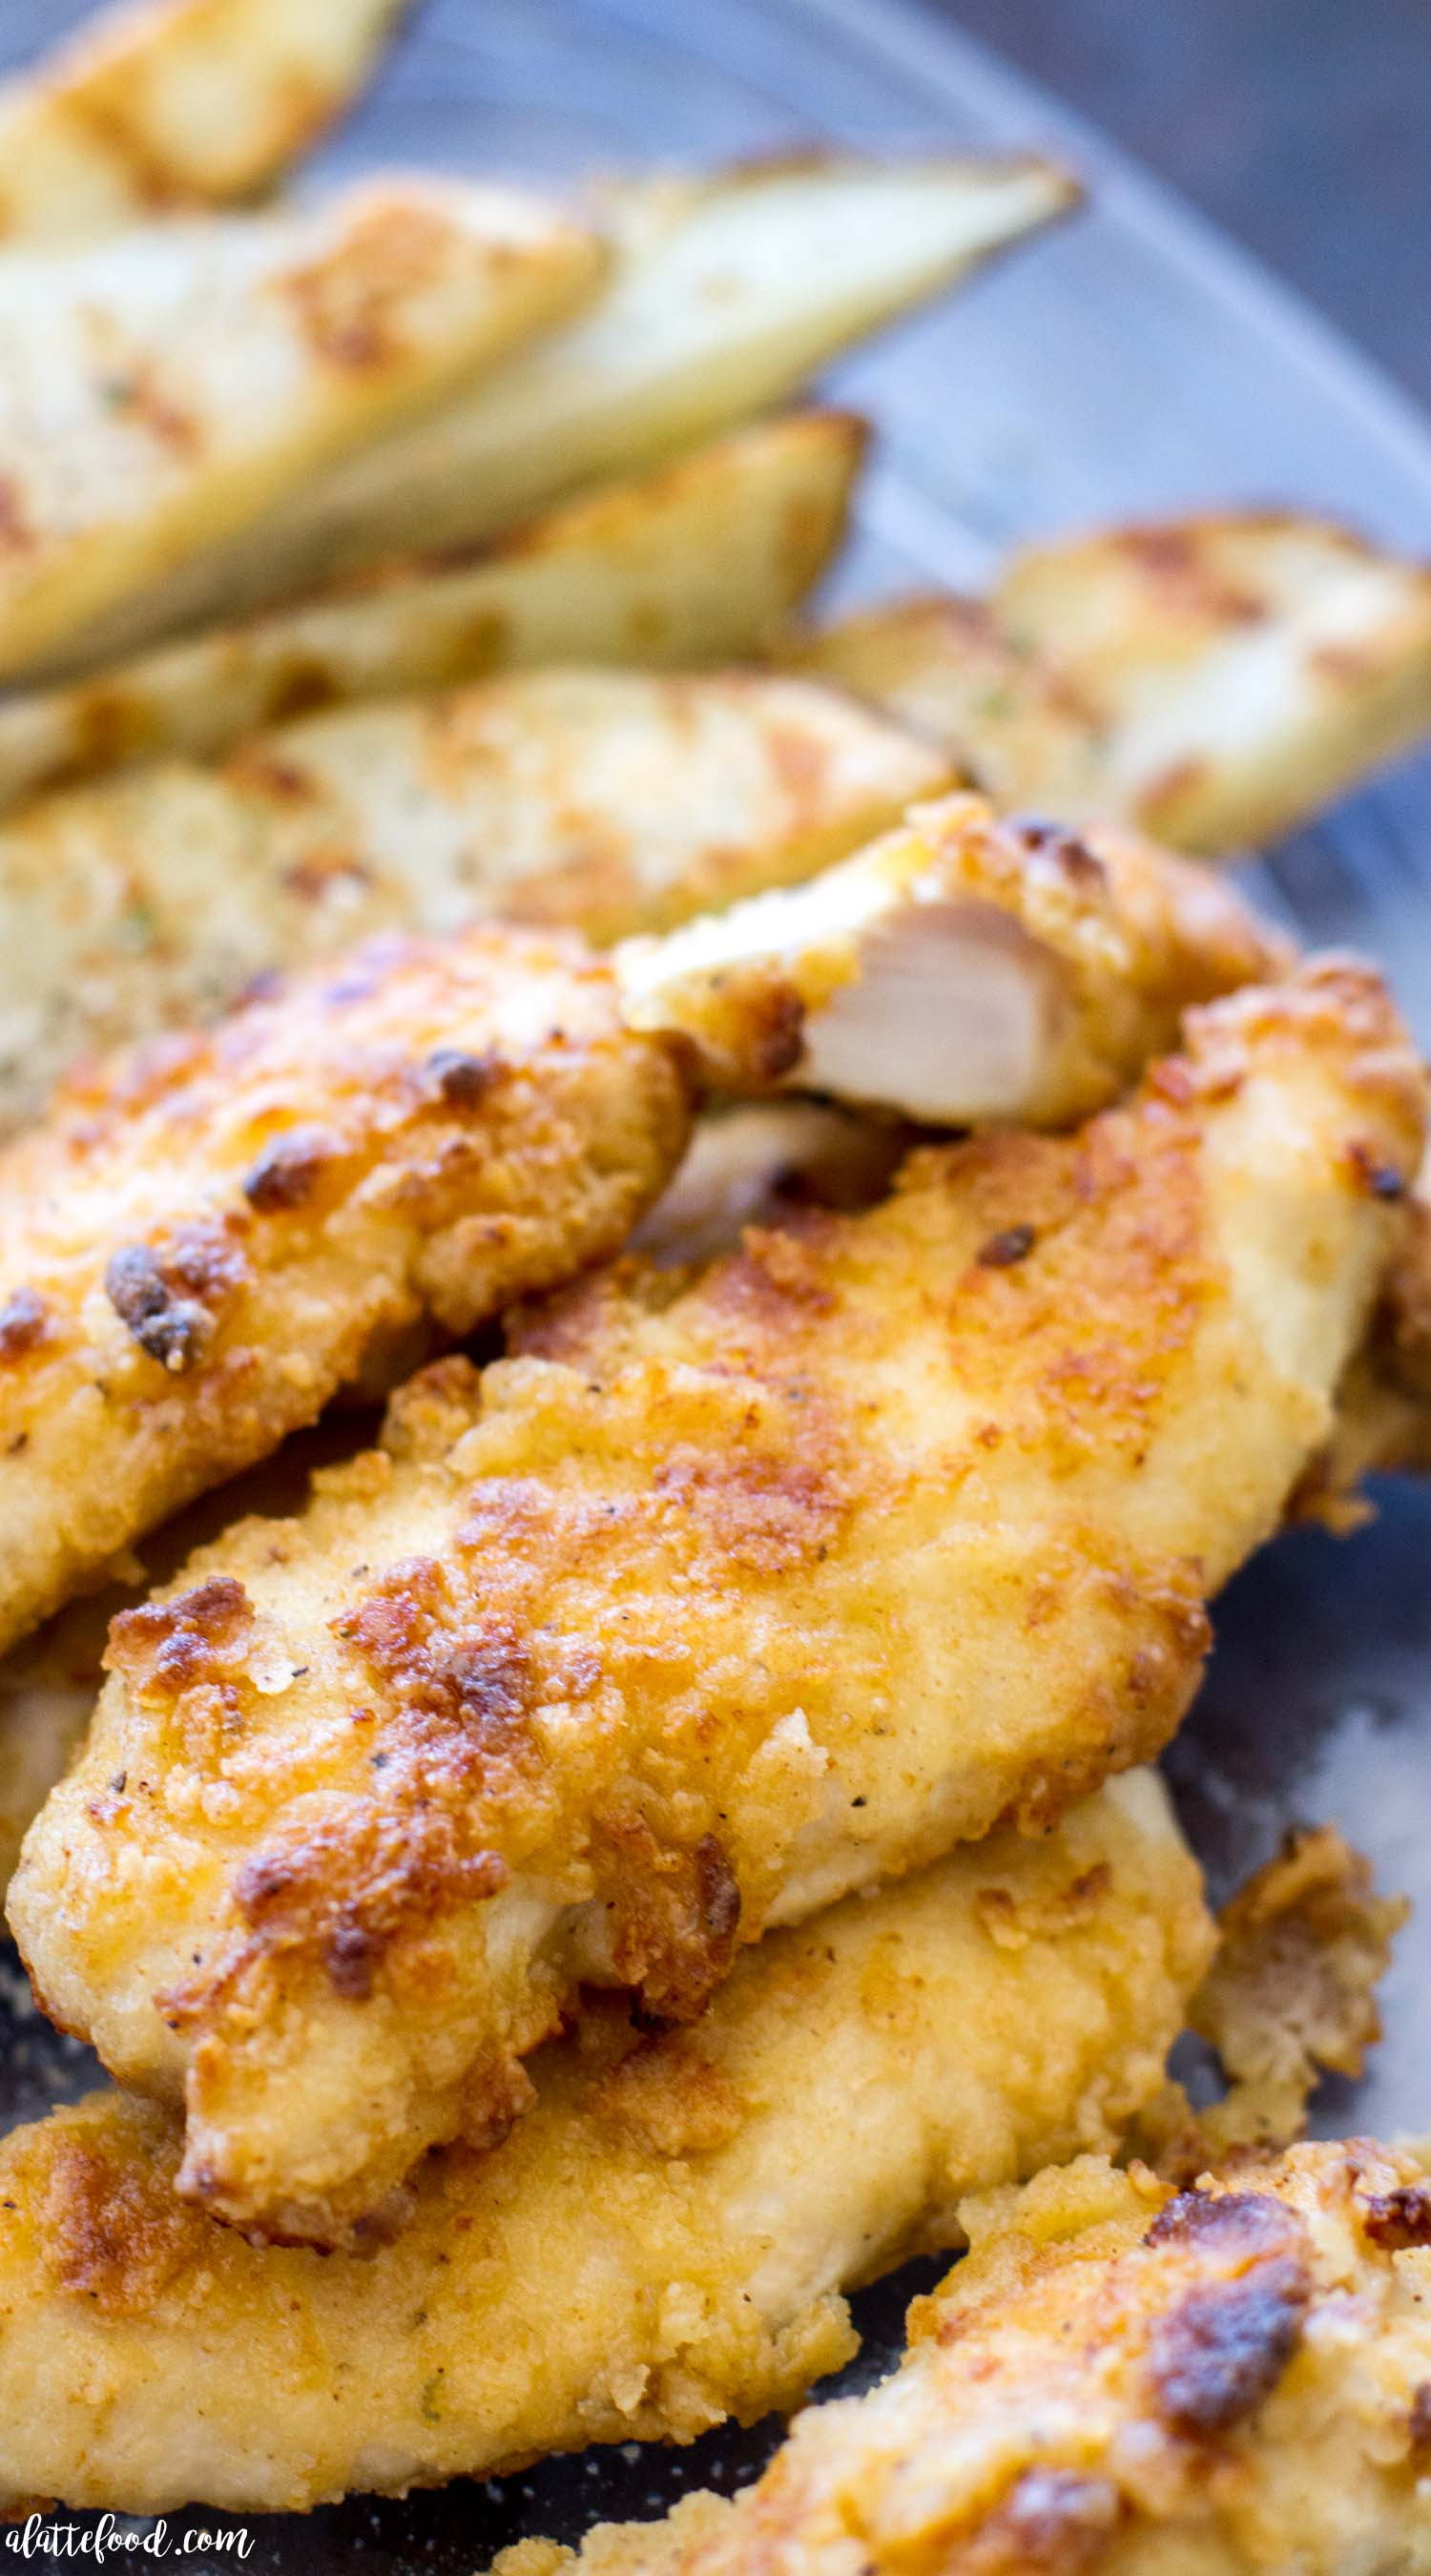 Oven-Fried Chicken Tenders with Five-Spice BBQ Sauce With sesame seeds and Chinese five-spice powder, you'll definitely want to skip the takeout tenders. Get the recipe from Delish.